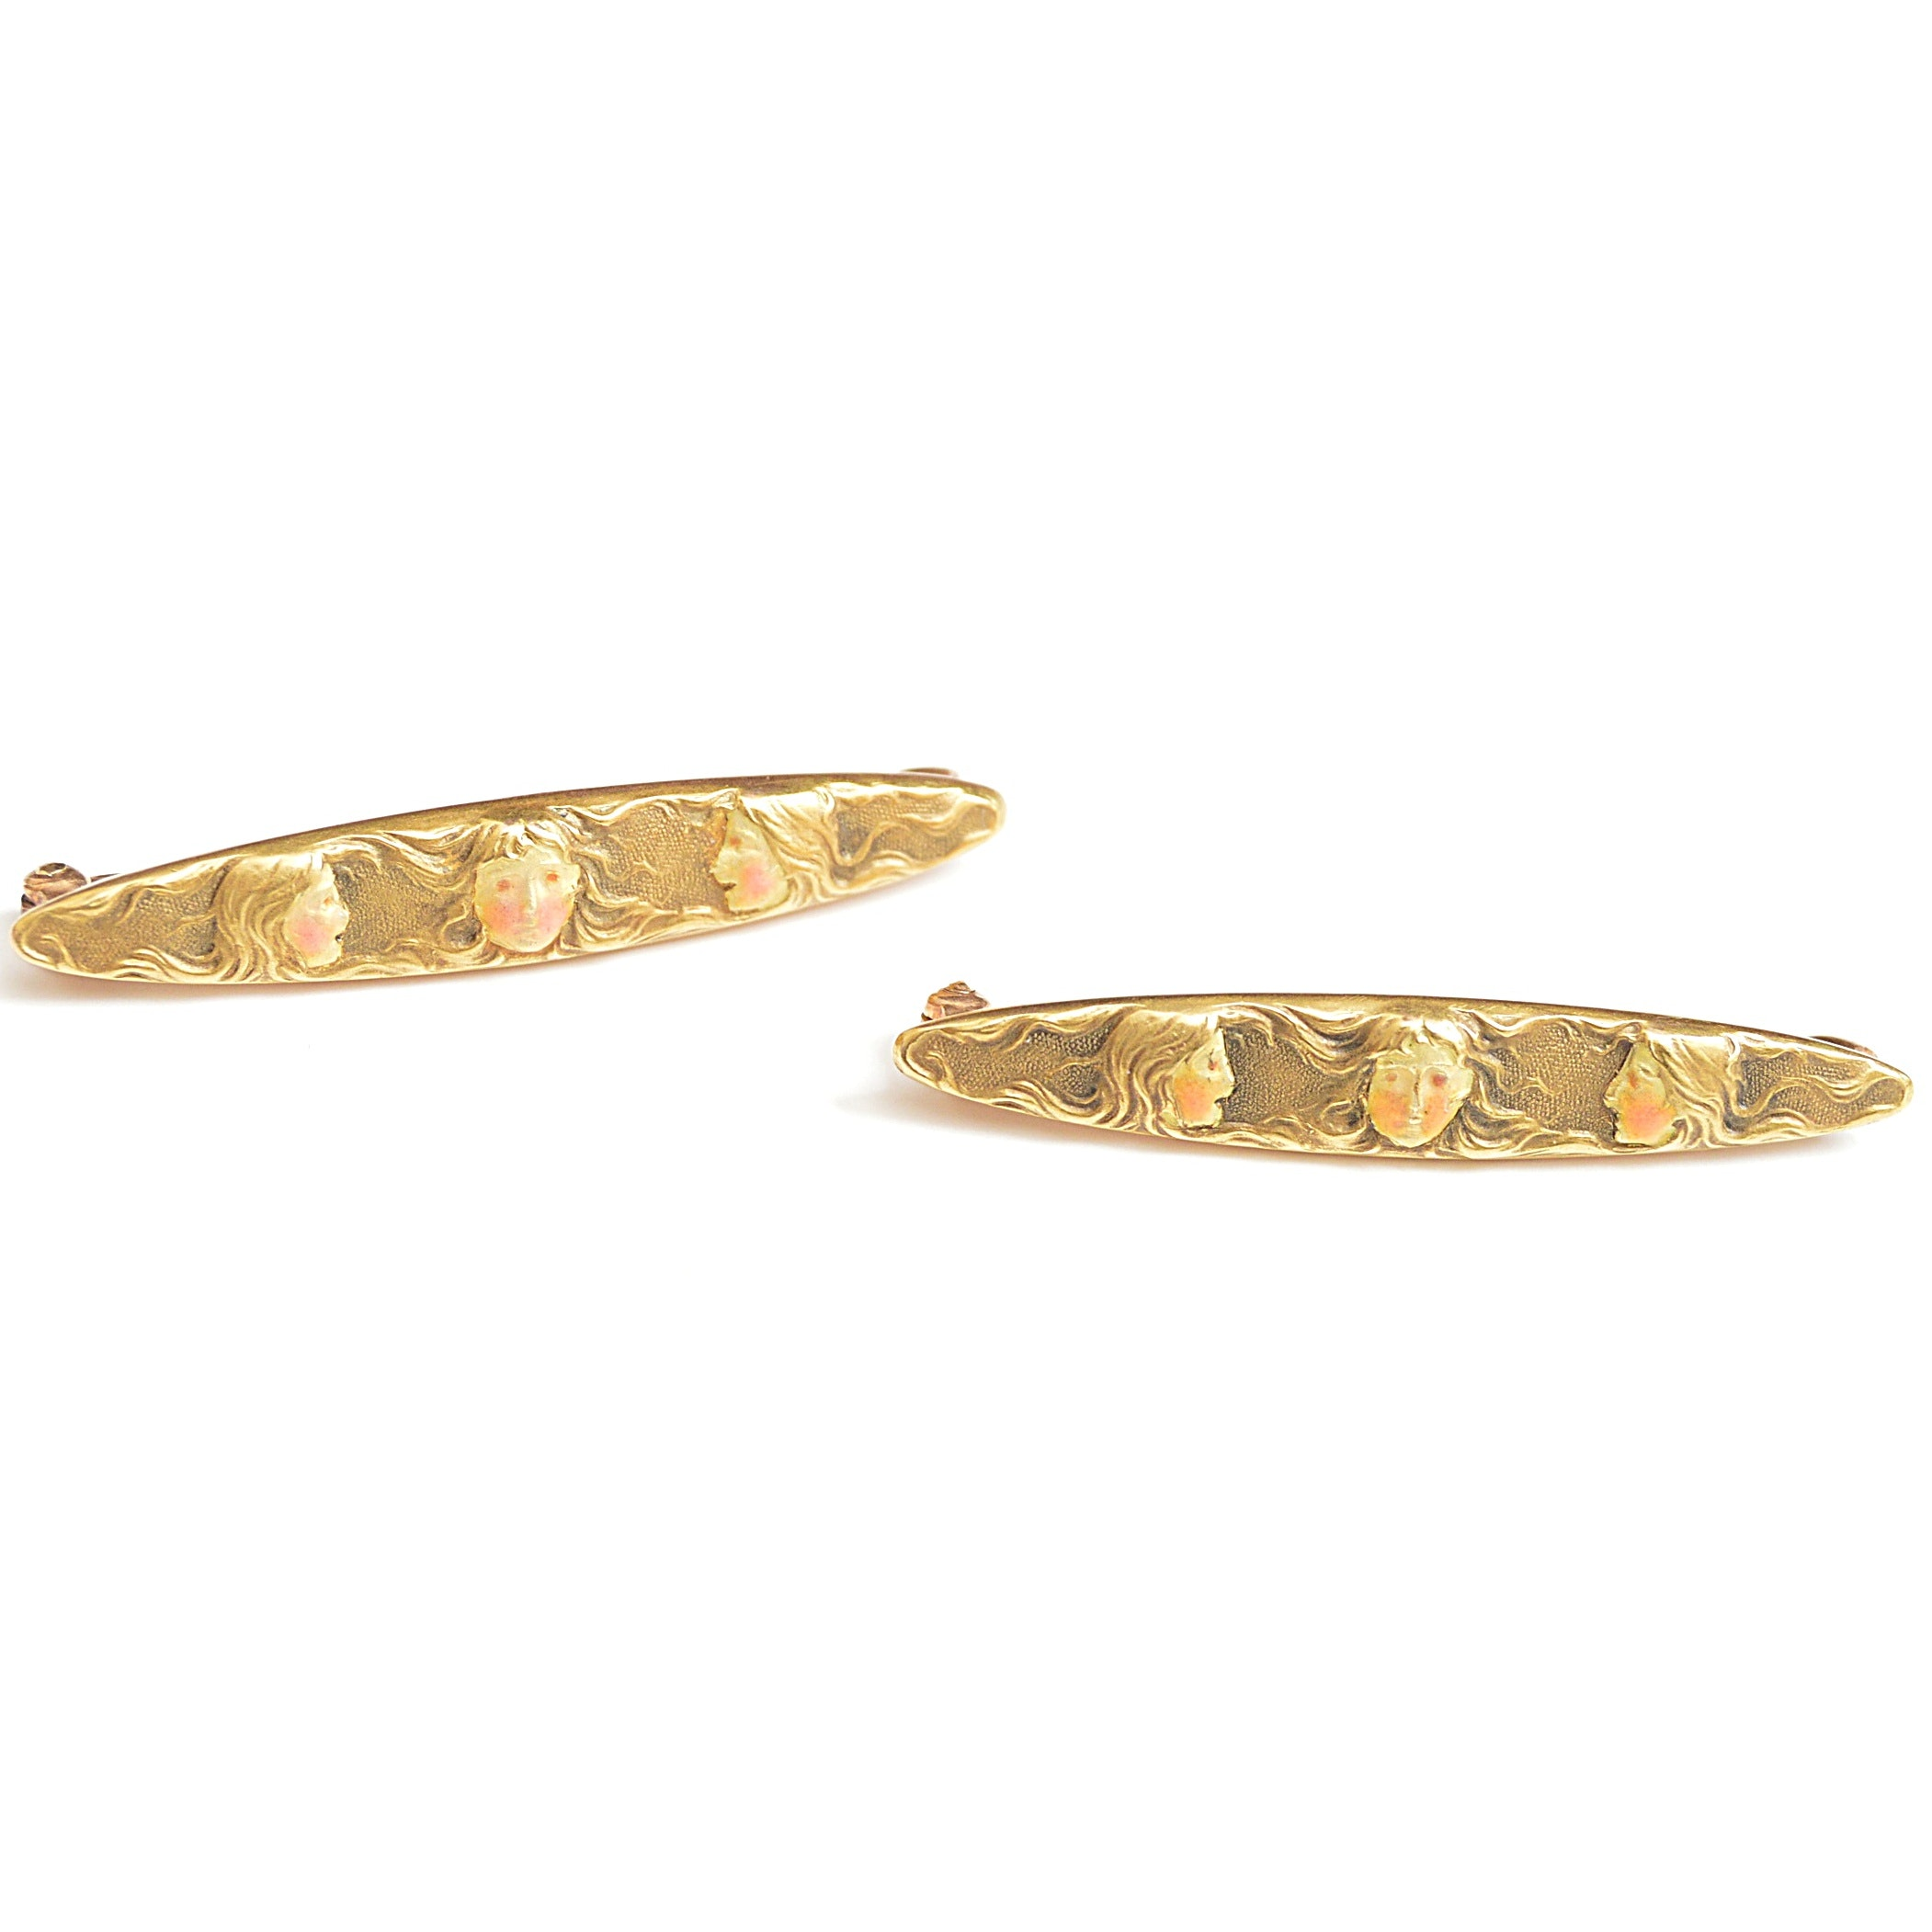 Art Nouveau 14K Yellow Gold Brooches